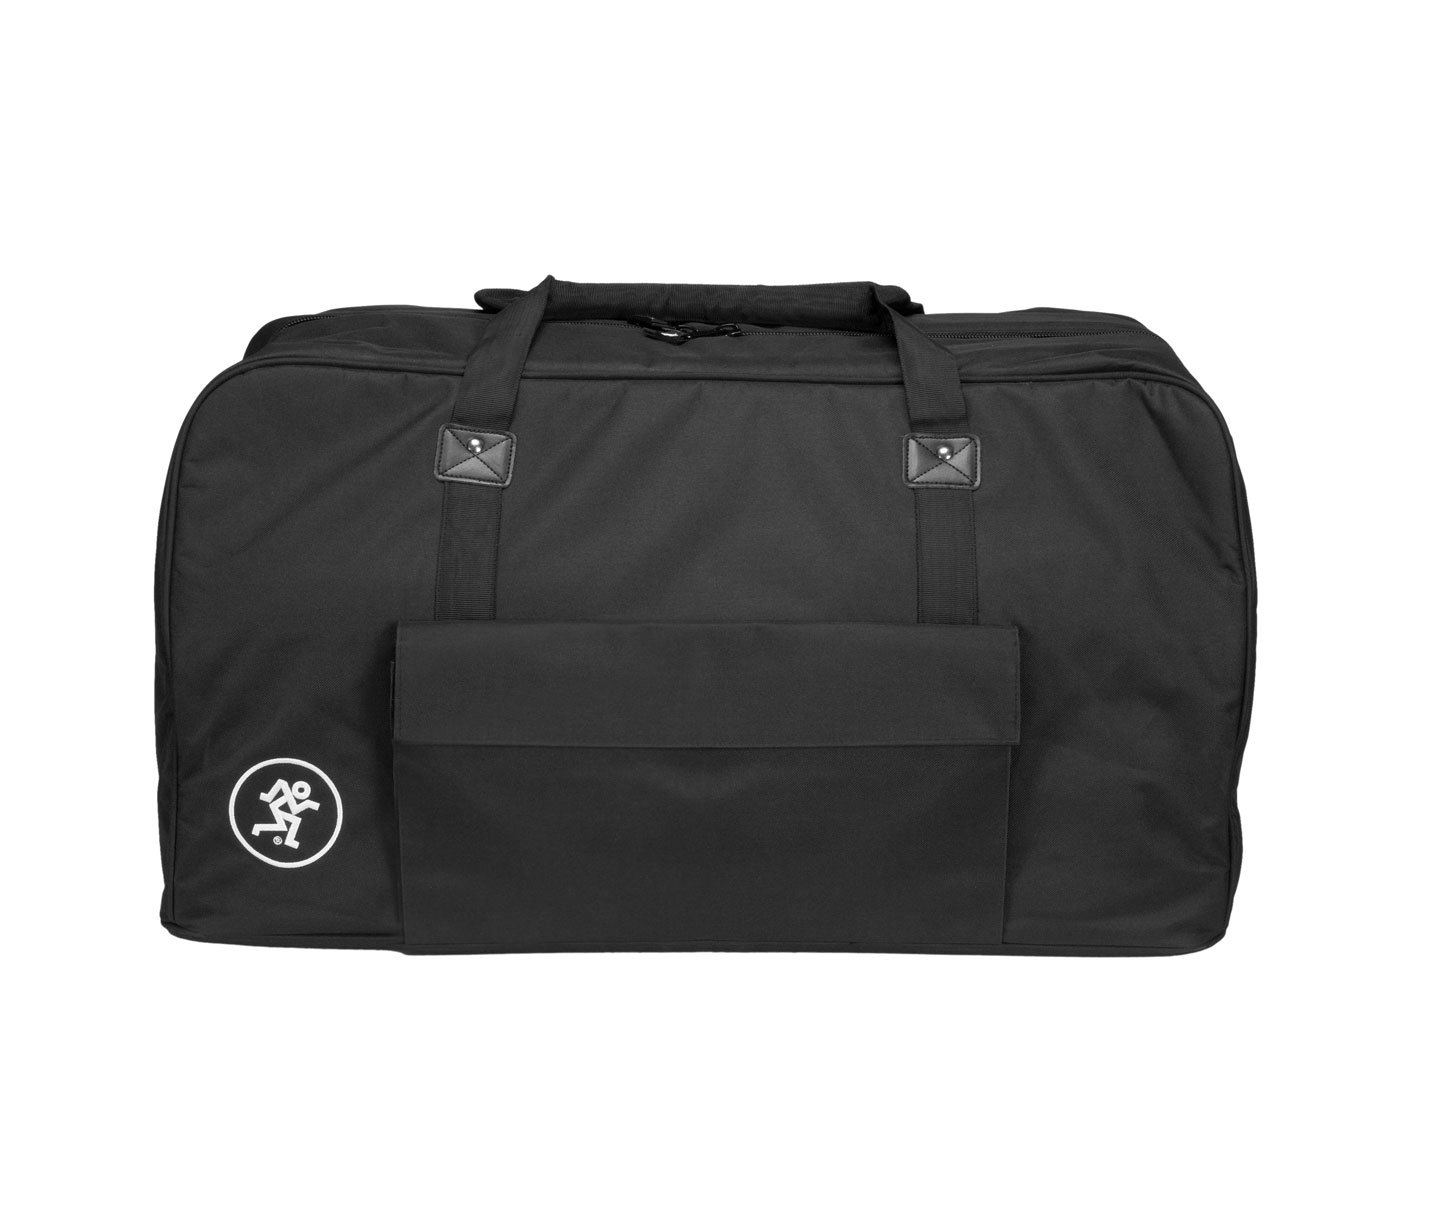 Mackie Speaker Bag for TH-15A (TH-15A Bag)